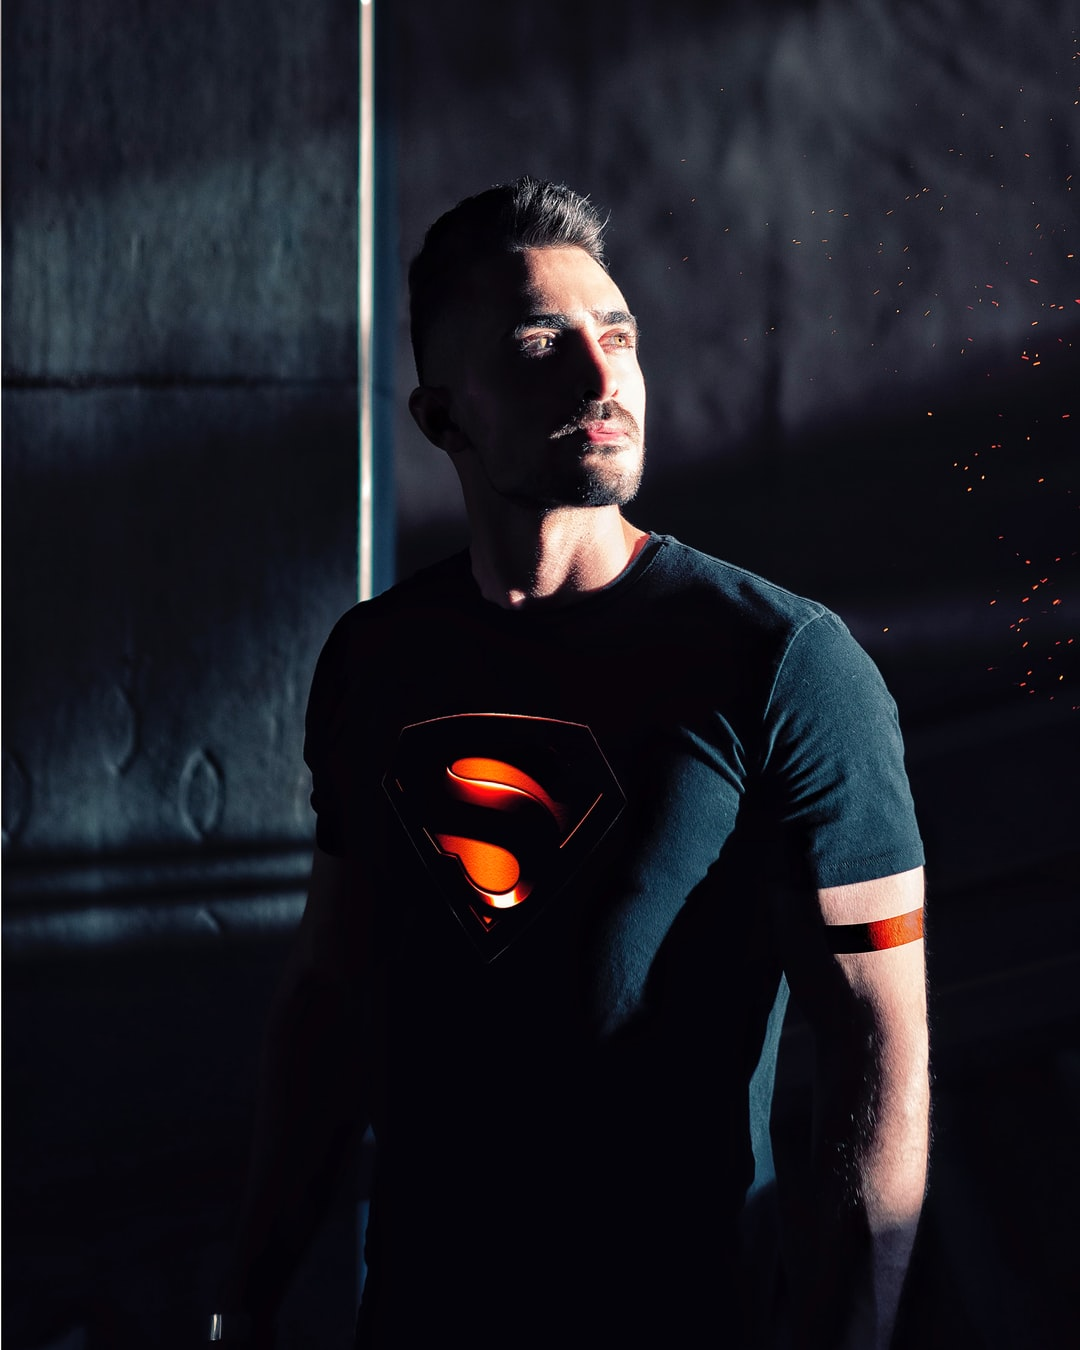 Super Hero Pictures [HD] | Download Free Images & Stock Photos on